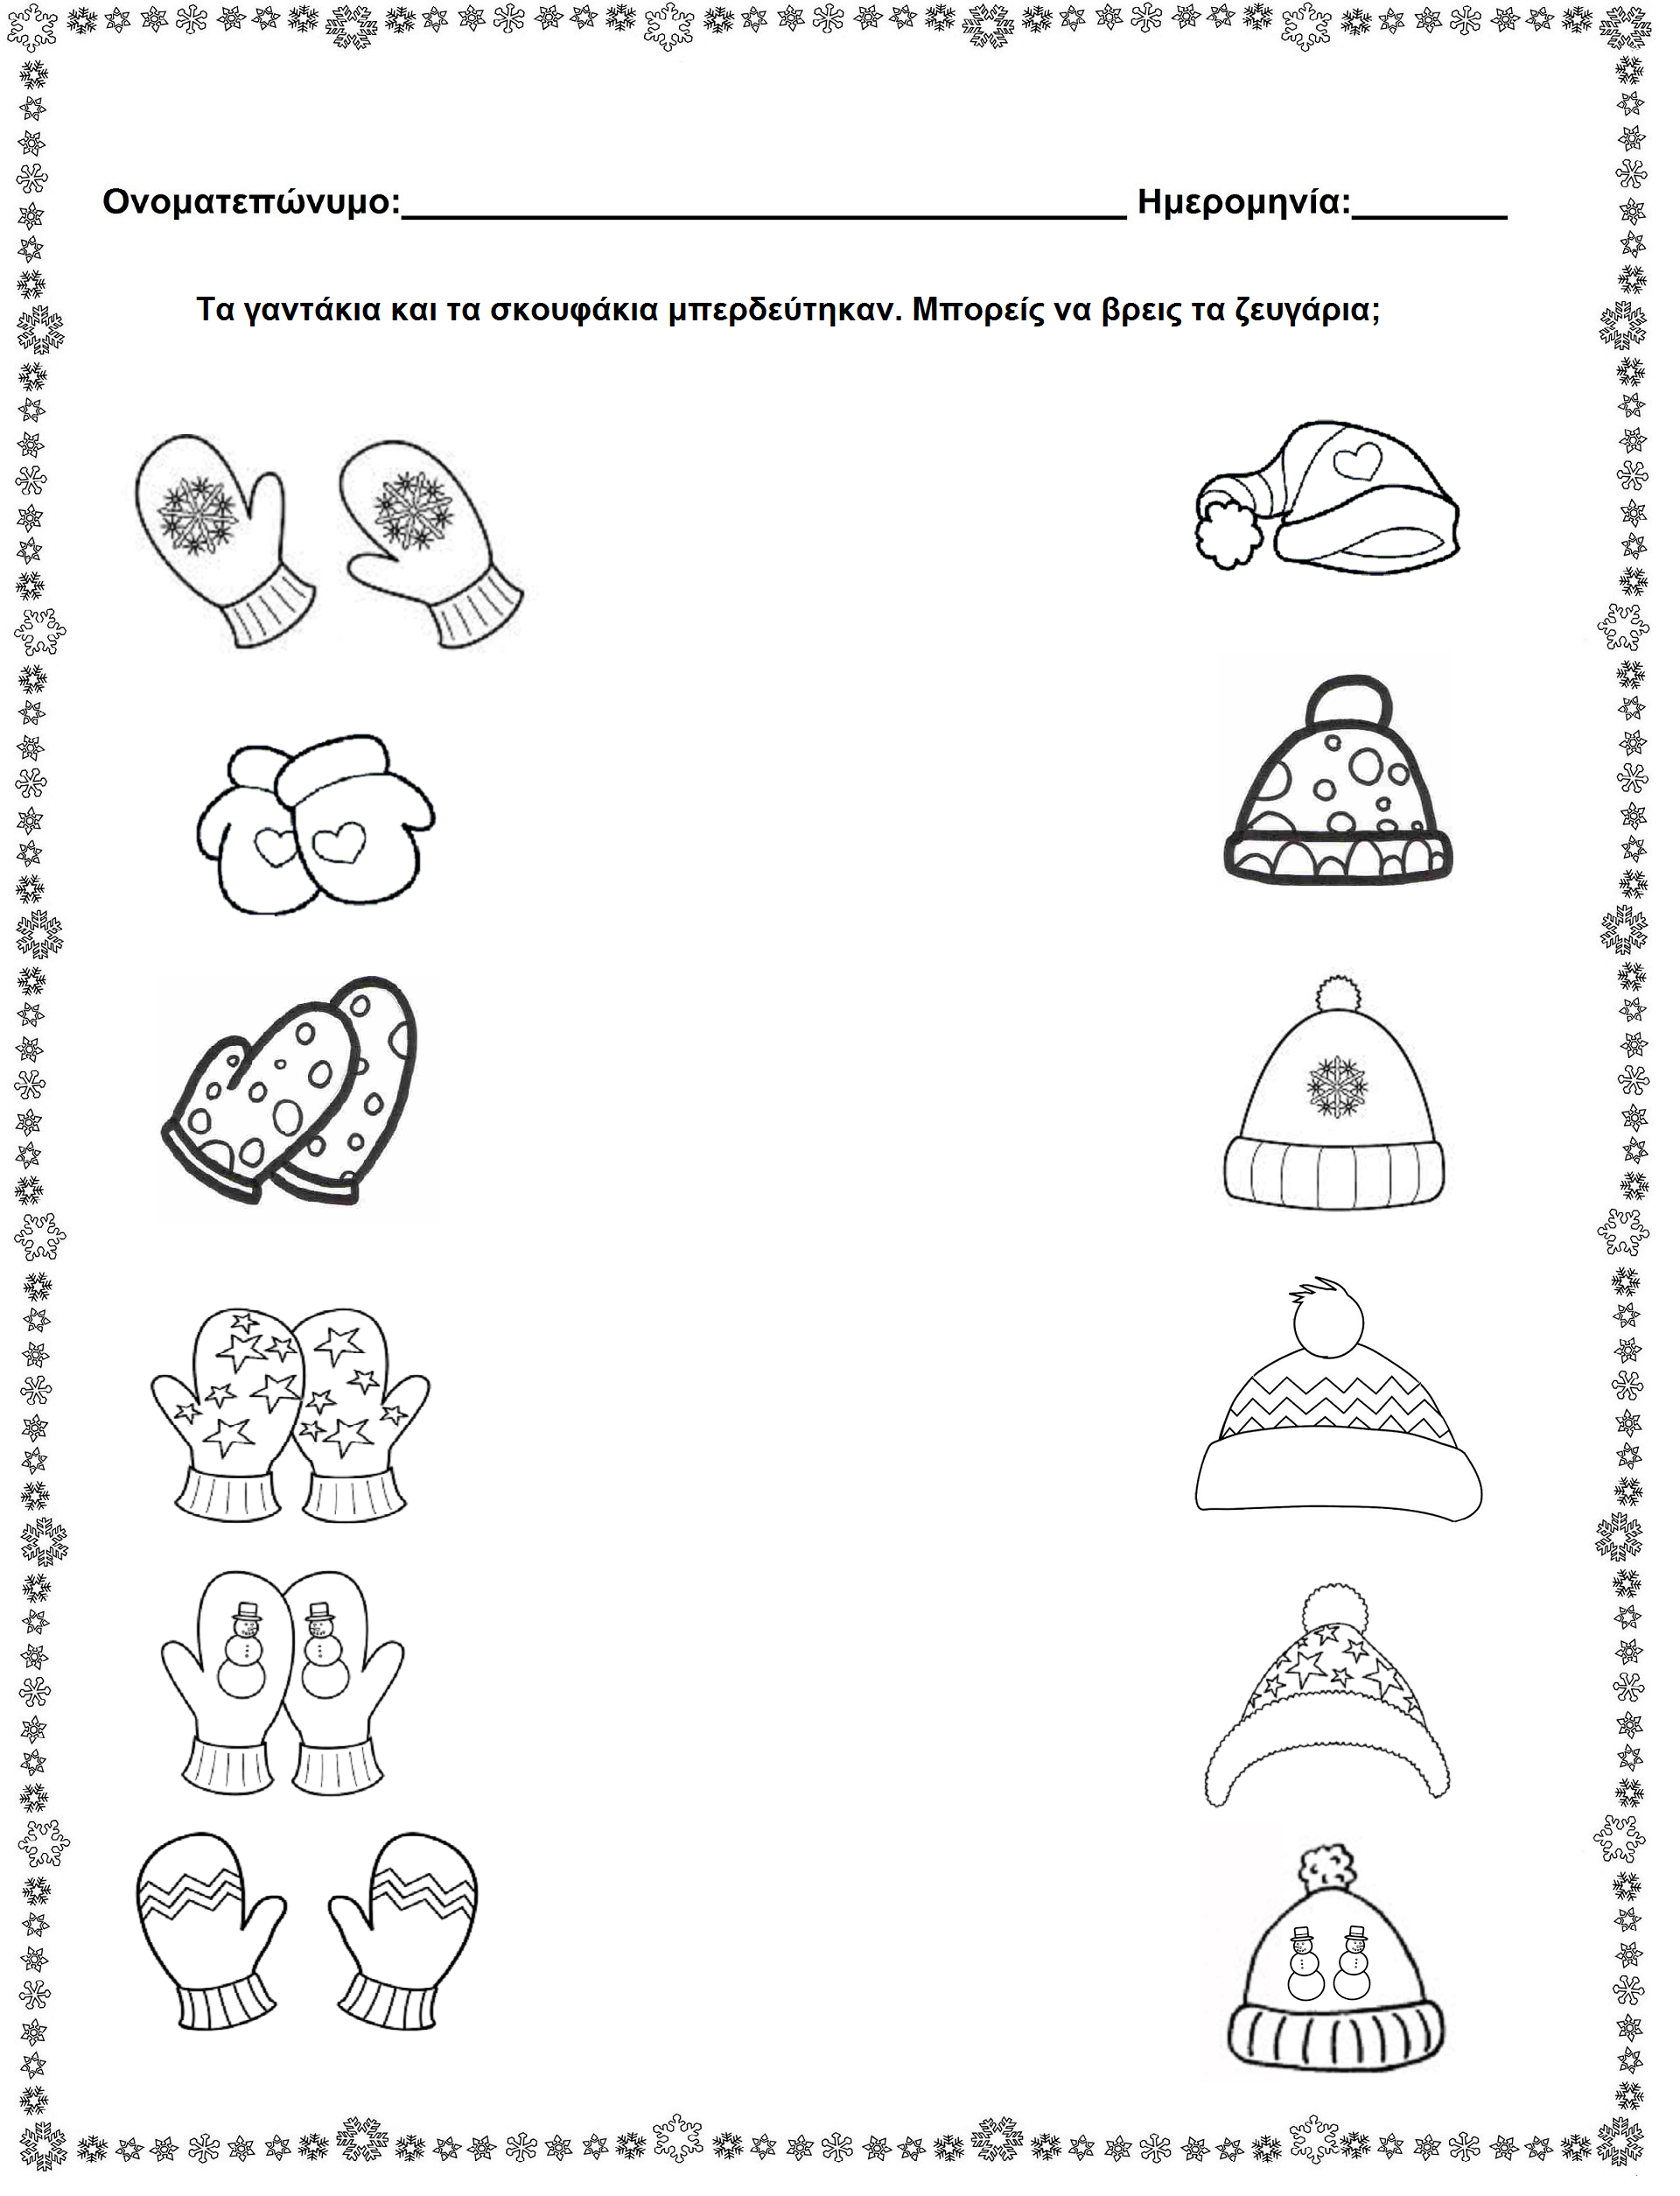 Pin De Evelyn De La Garza En School Worksheets